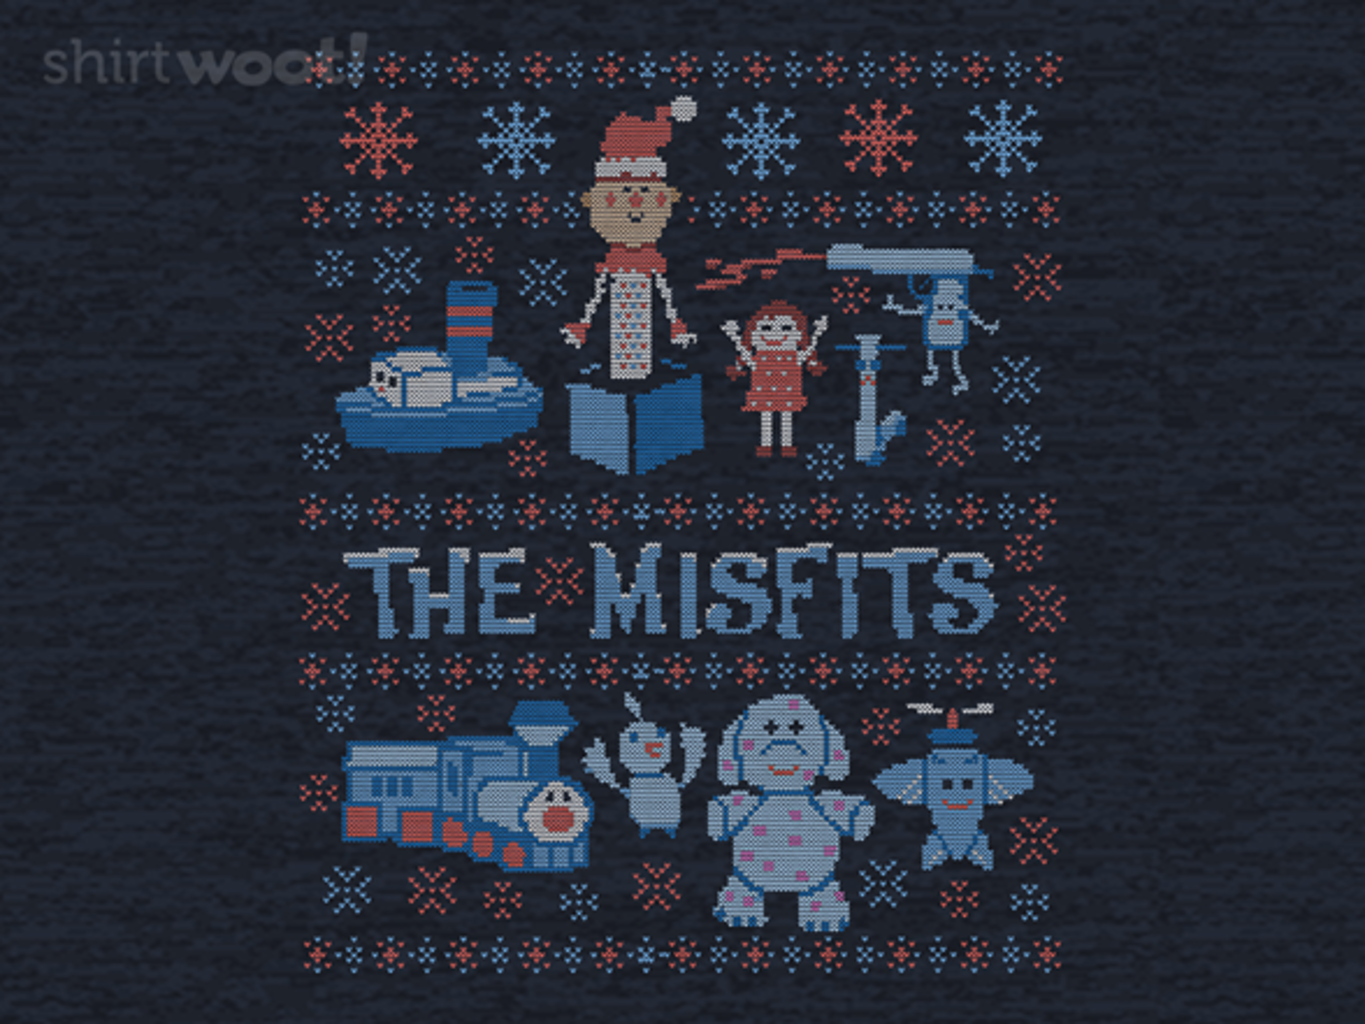 Woot!: The Misfits